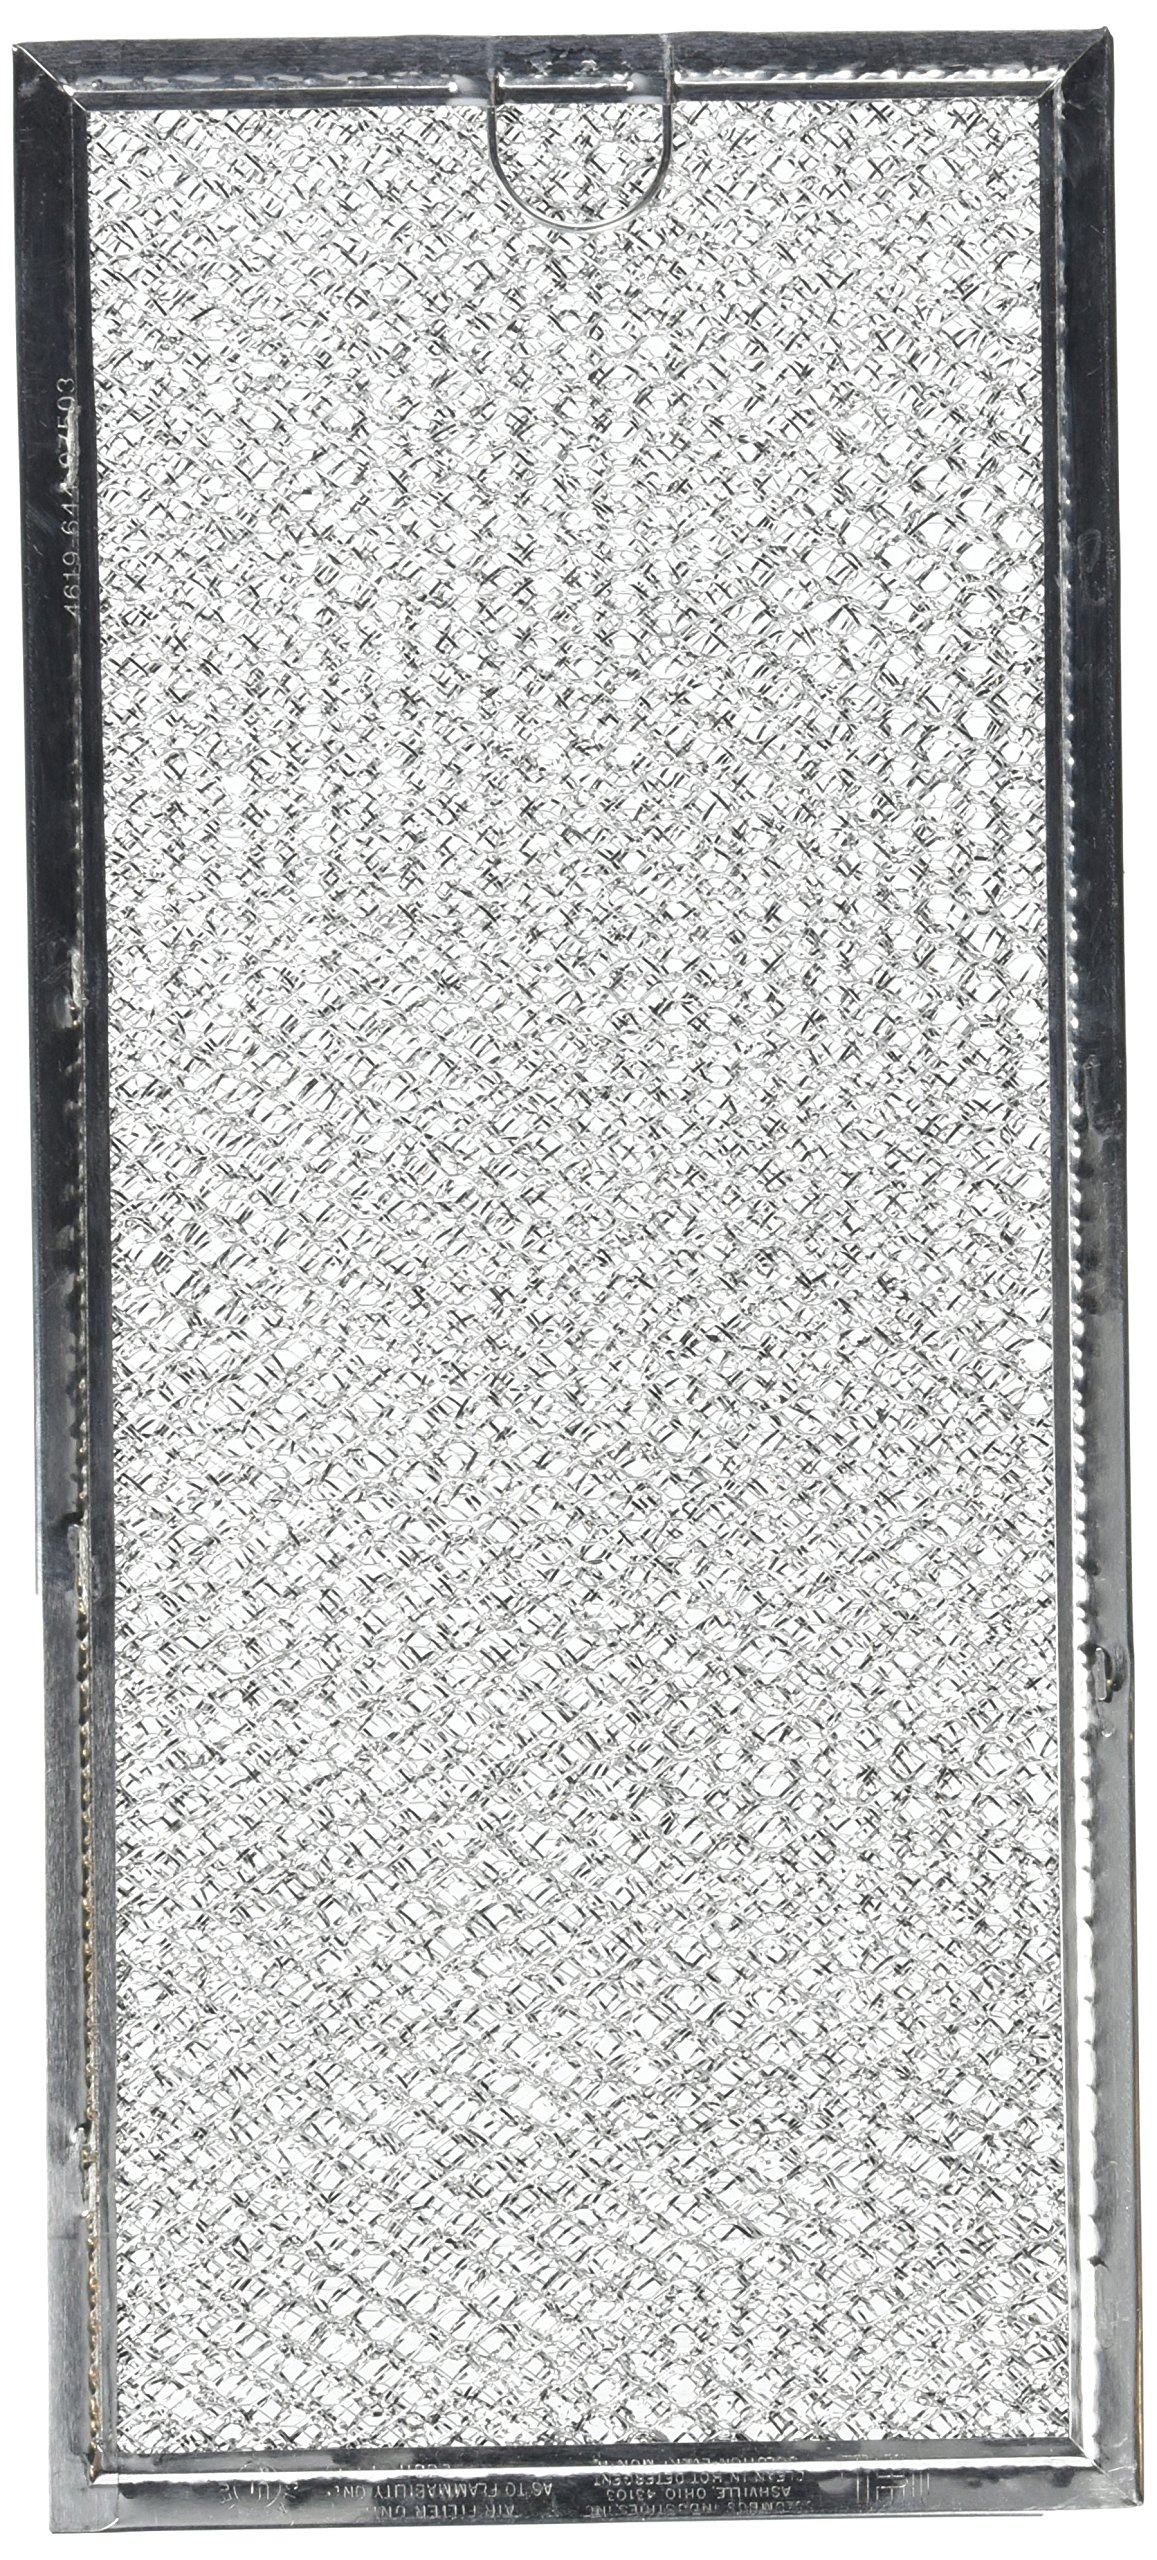 6802A MICROWAVE GREASE FILTER ( 5-7/8'' X 13-3/8'')